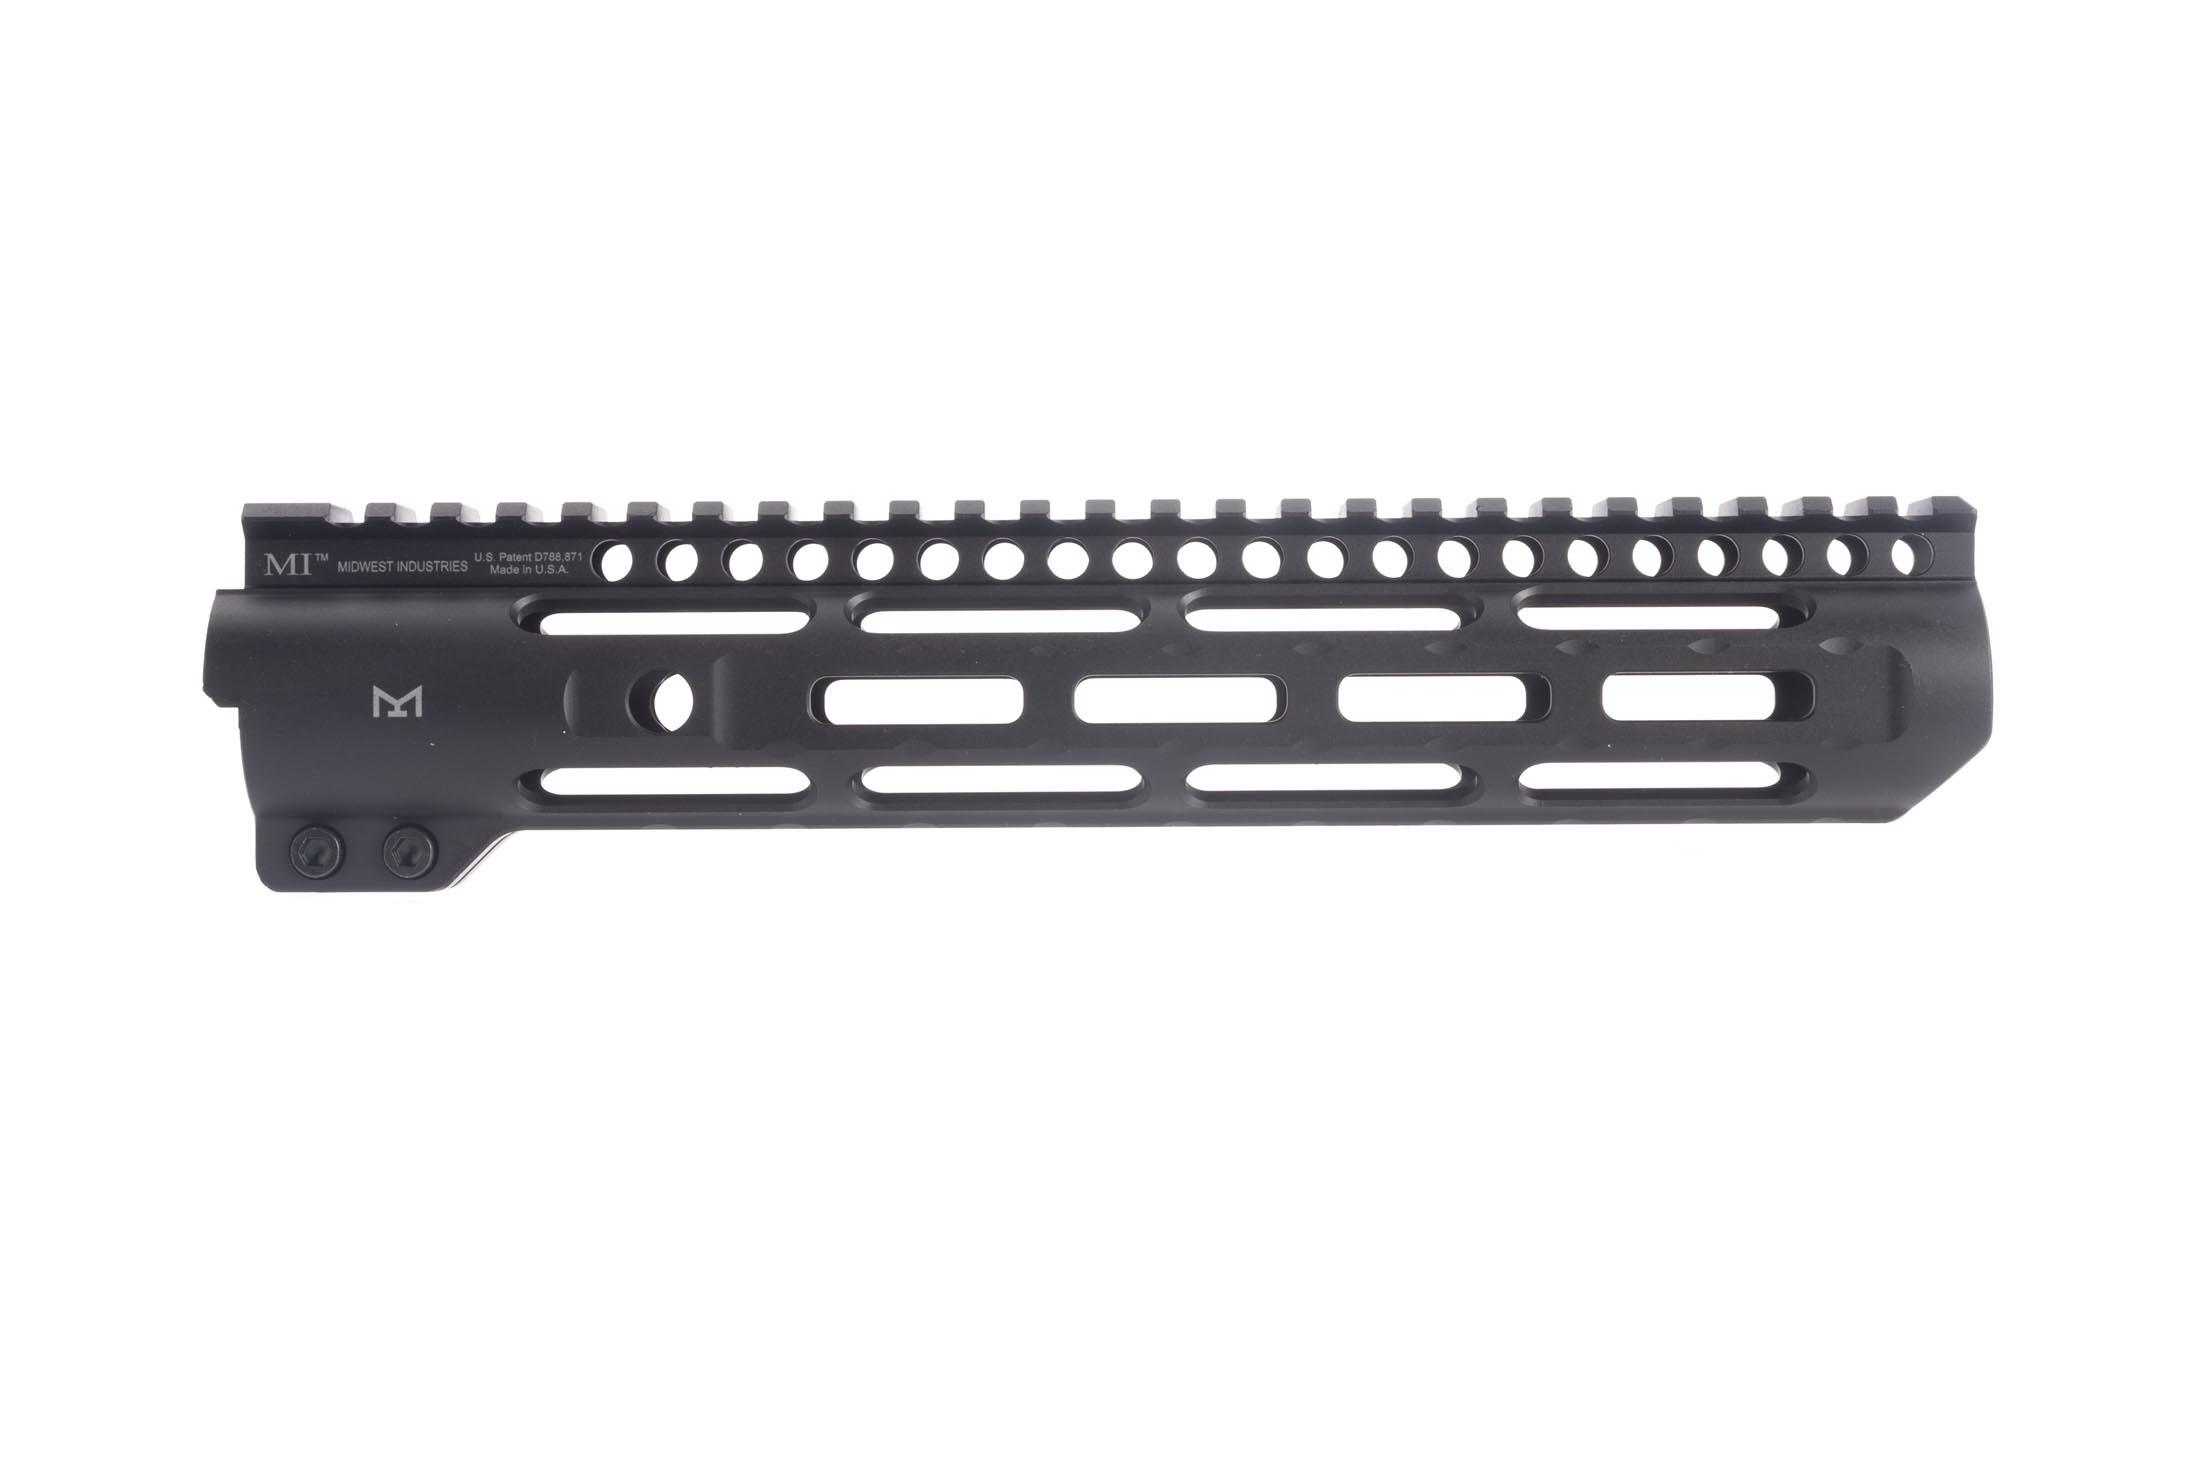 10.25in Midwest Industries slim line AR-15 handguard features M-LOK slots and will cover a Mid-length gas system